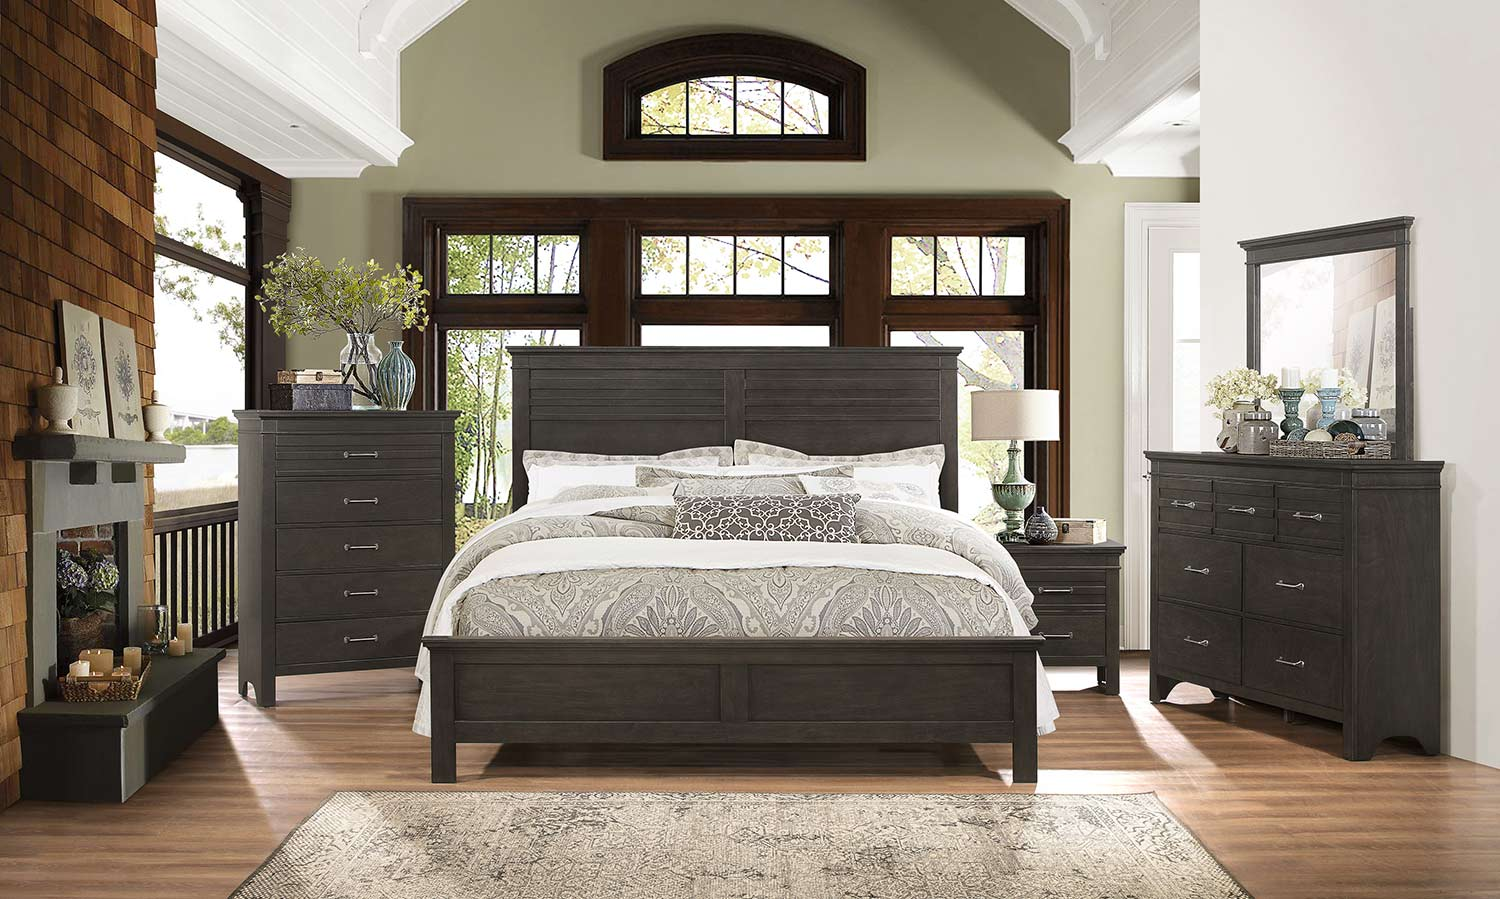 Homelegance Blaire Farm Bedroom Set - Espresso